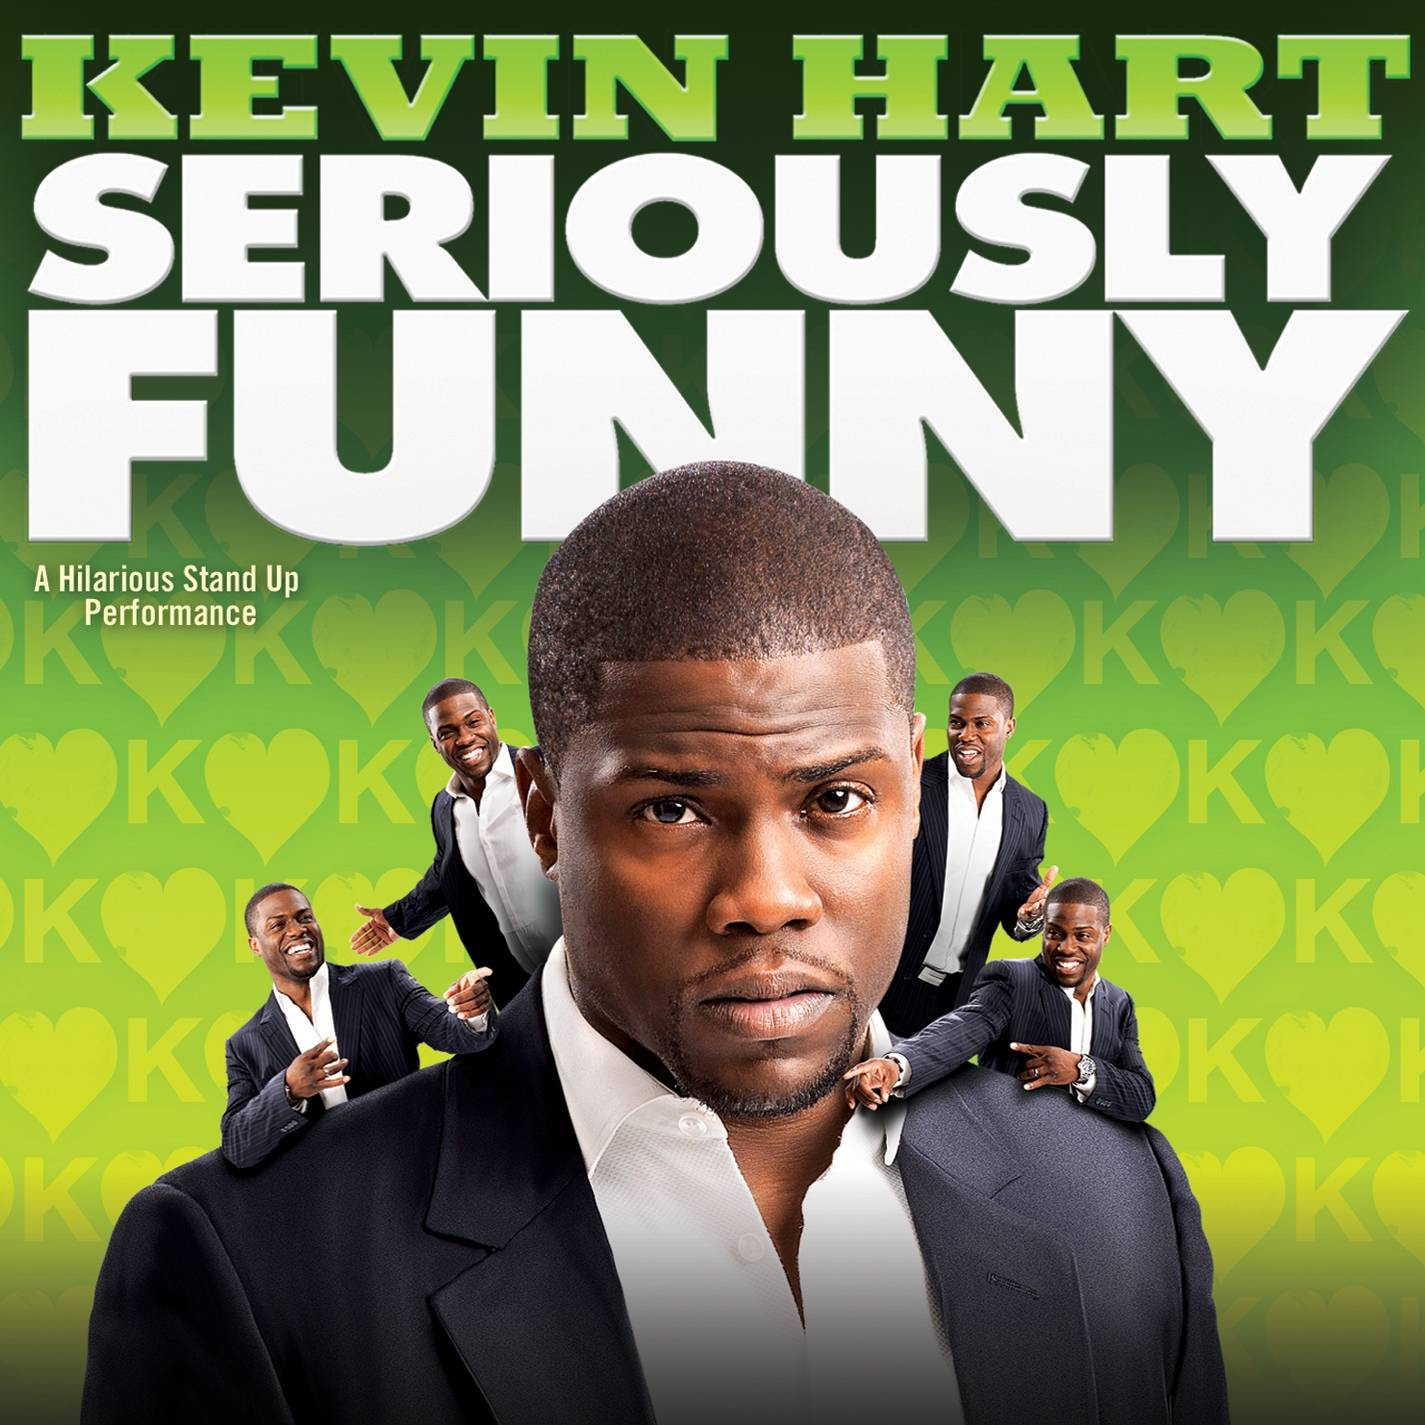 Kevin Hart Comedy Quotes. QuotesGram